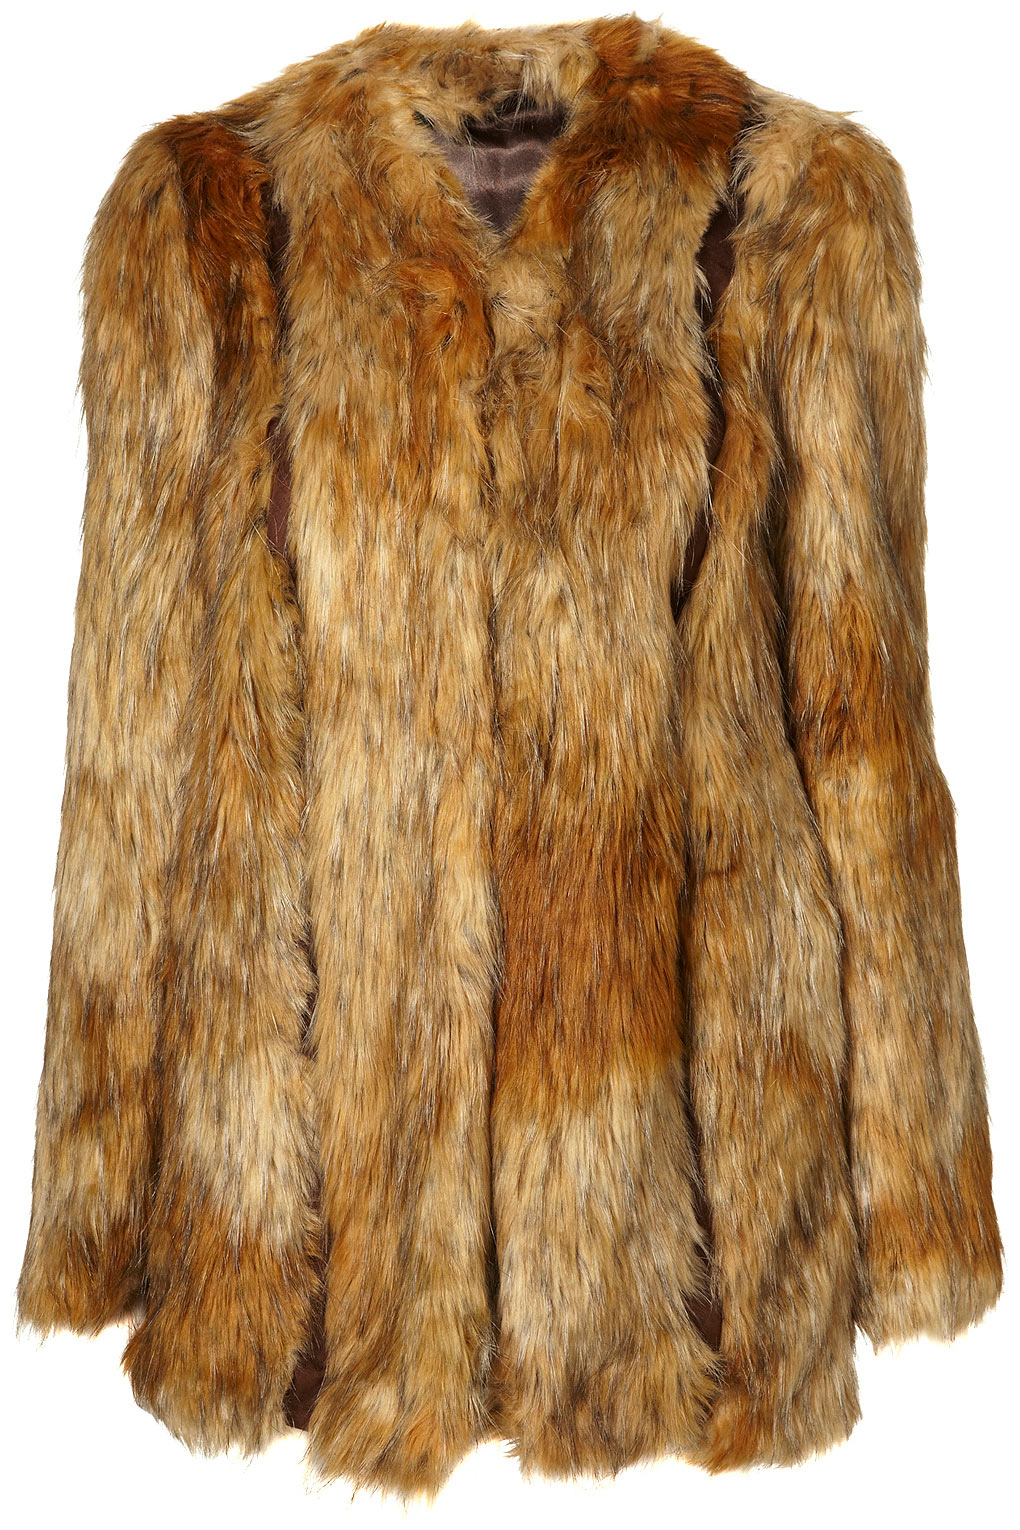 Fur coat: The meaning of the dream in which you see 'Fur coat'